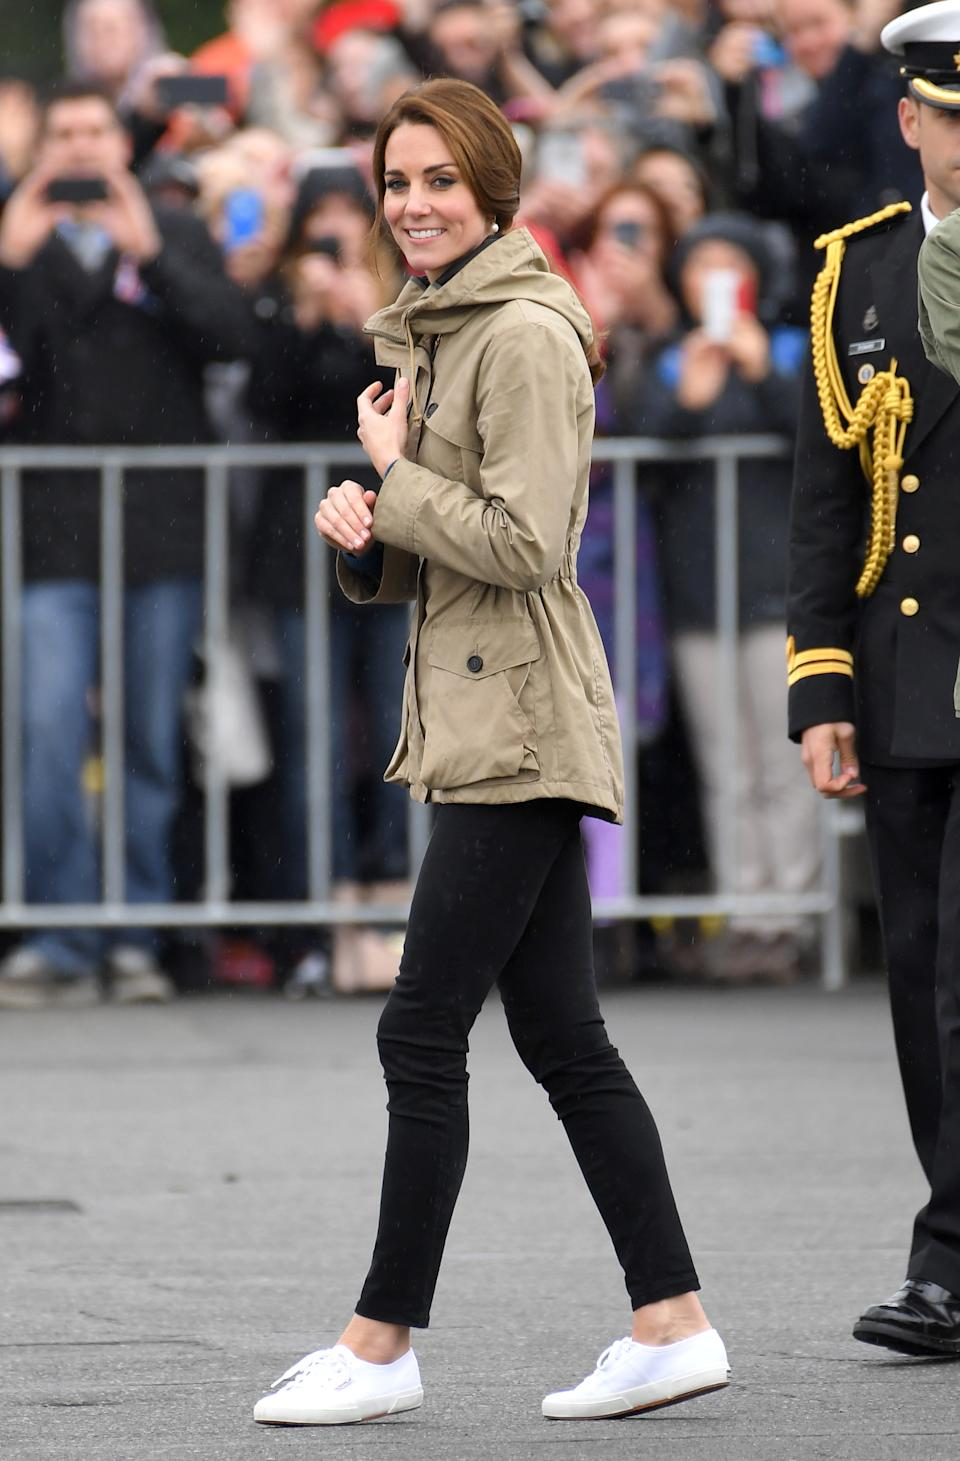 The Duchess of Cambridge's trusty Superga sneakers are 25% off at Nordstrom right now.